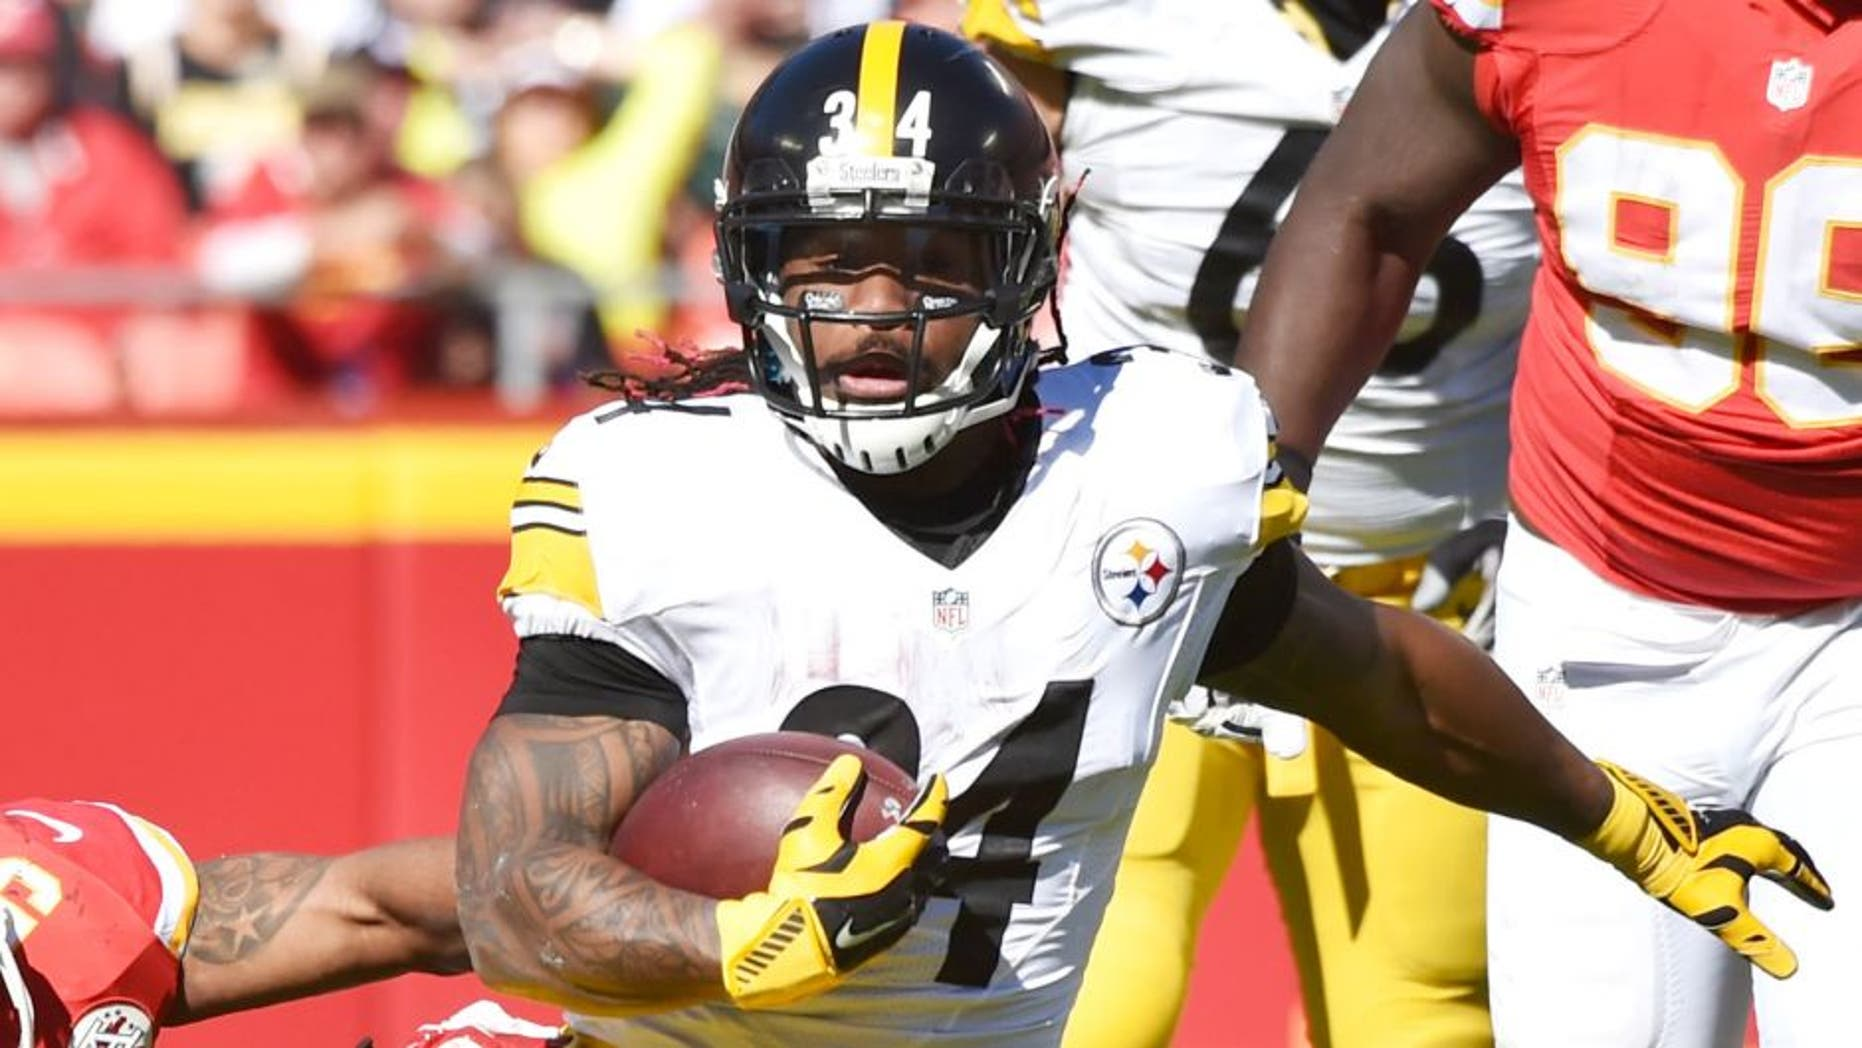 KANSAS CITY, MO - OCTOBER 25: DeAngelo Williams #34 of the Pittsburgh Steelers avoids the tackle of Derrick Johnson #56 of the Kansas City Chiefs at Arrowhead Stadium during the third quarter of the game on October 25, 2015 in Kansas City, Missouri. (Photo by Peter Aiken/Getty Images)